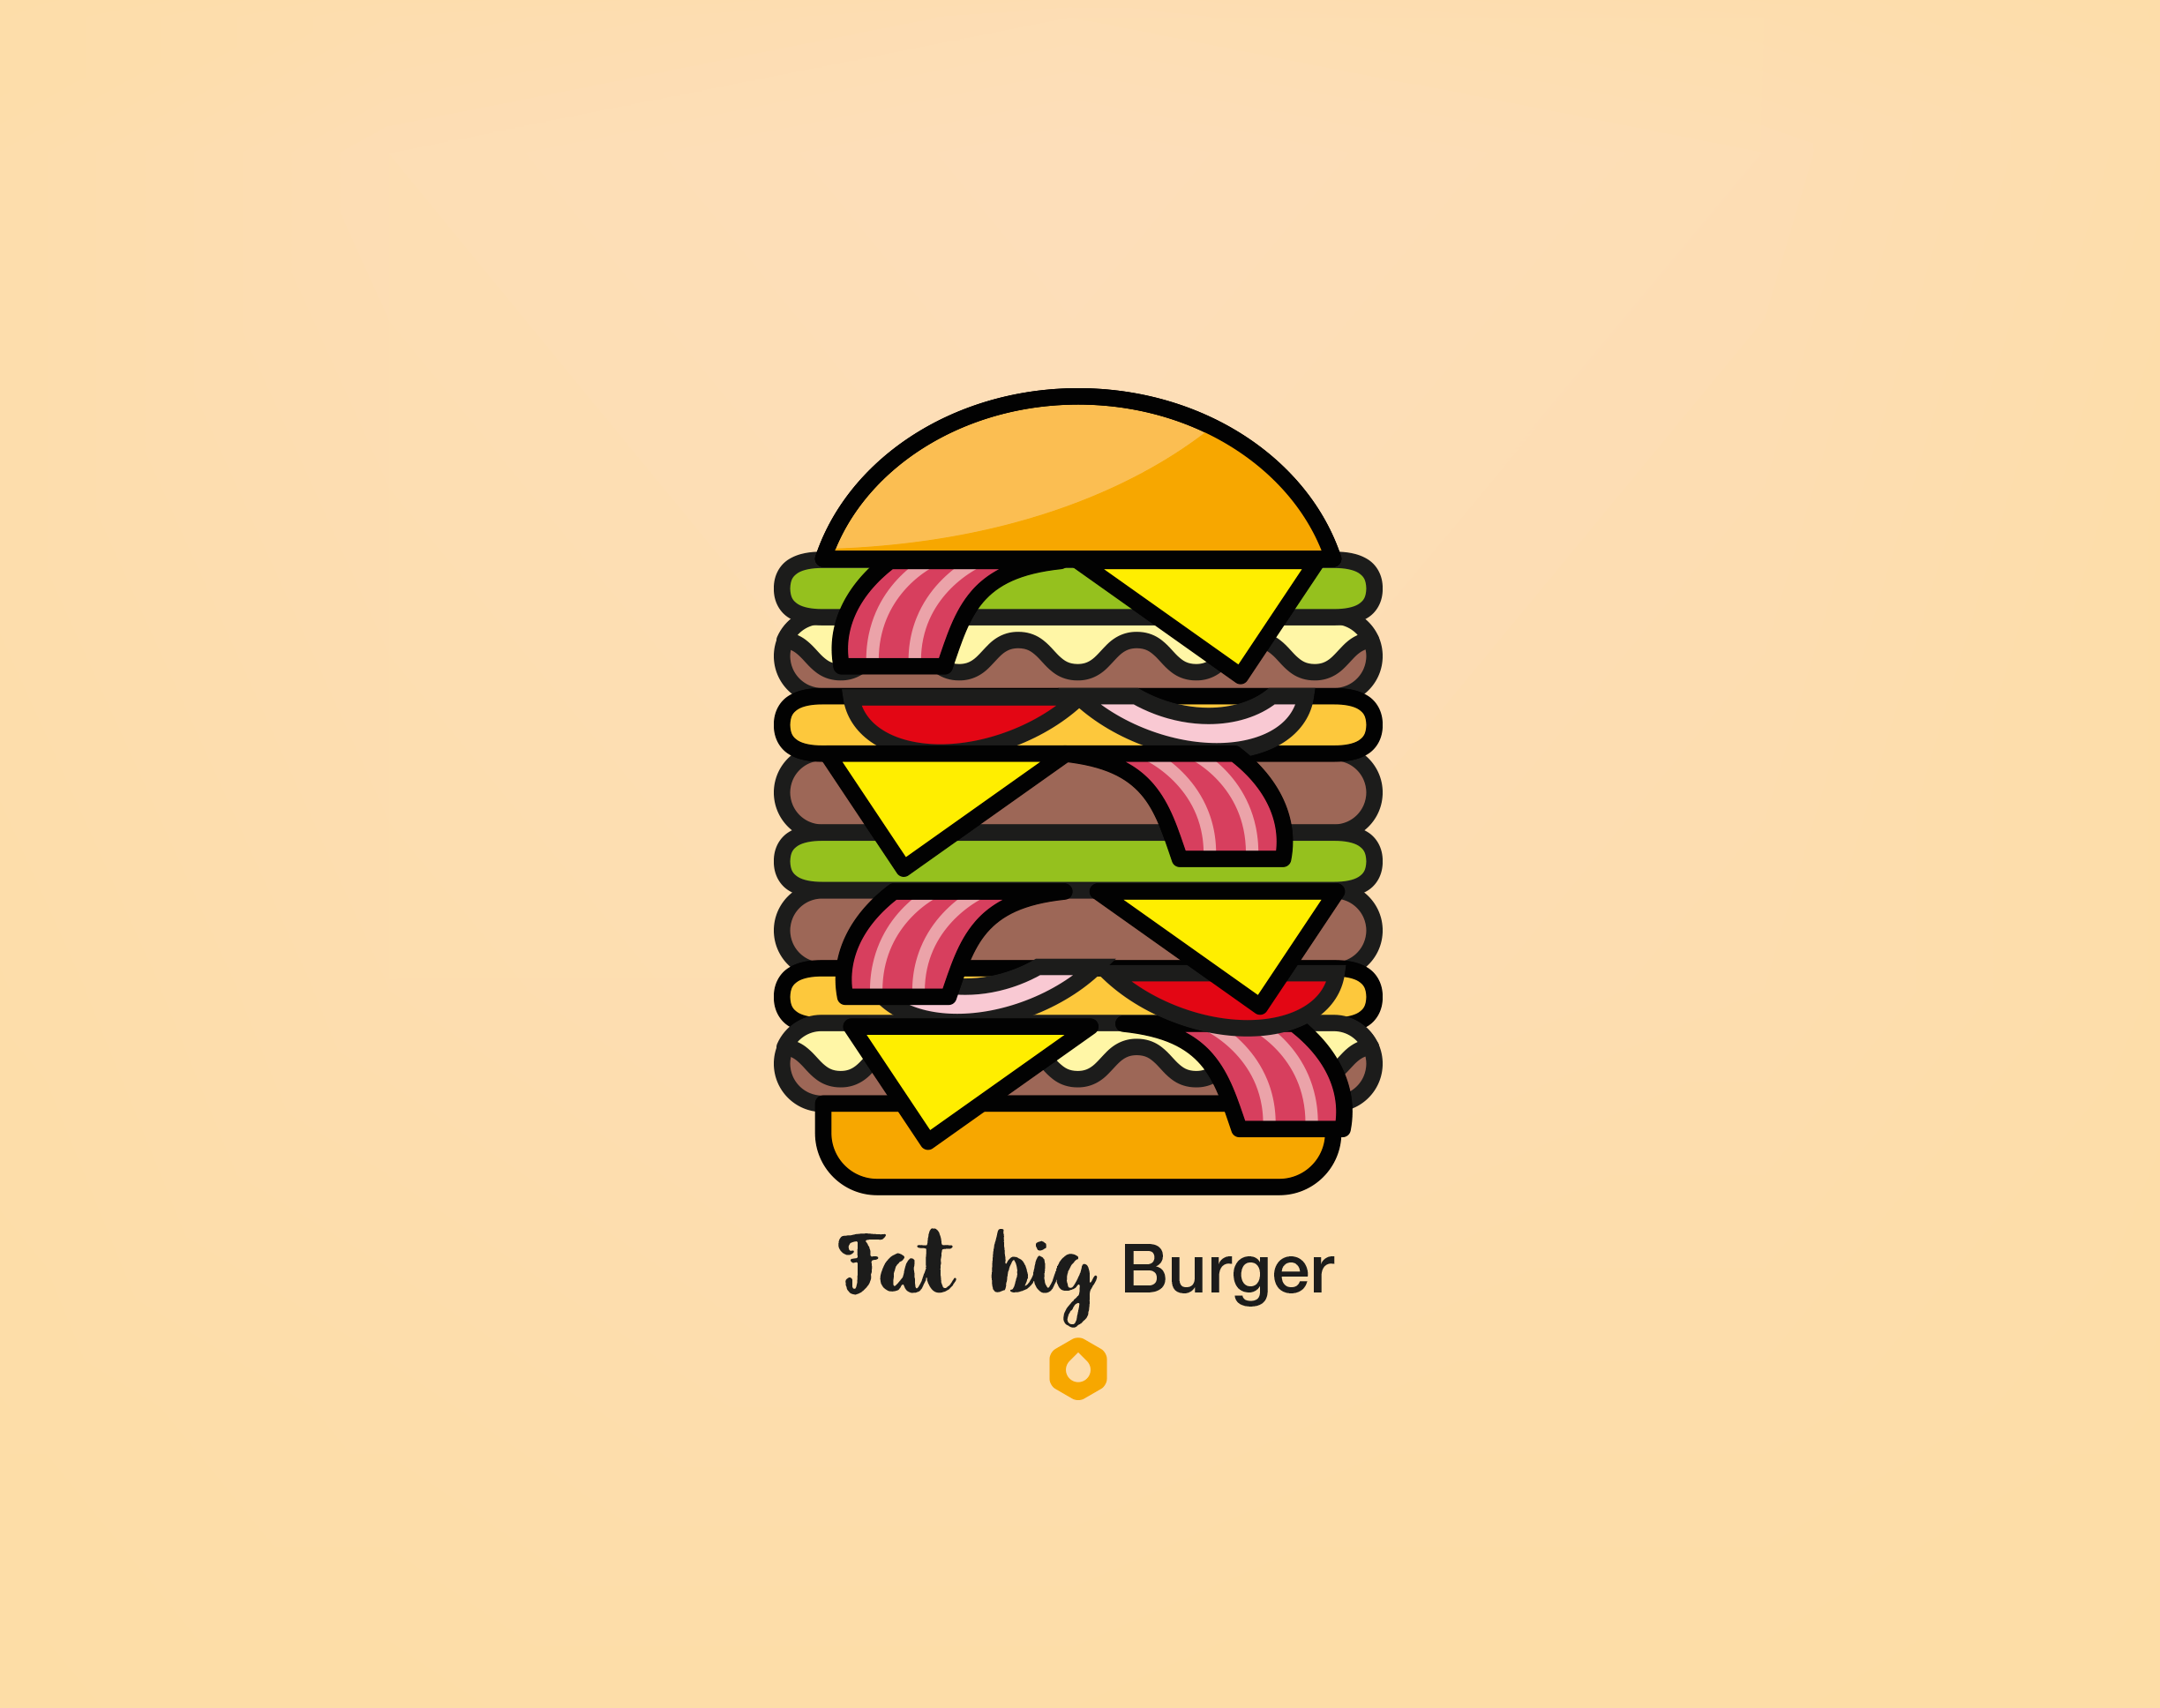 Wallpaper Pick Your Burger - Retina - FatBig